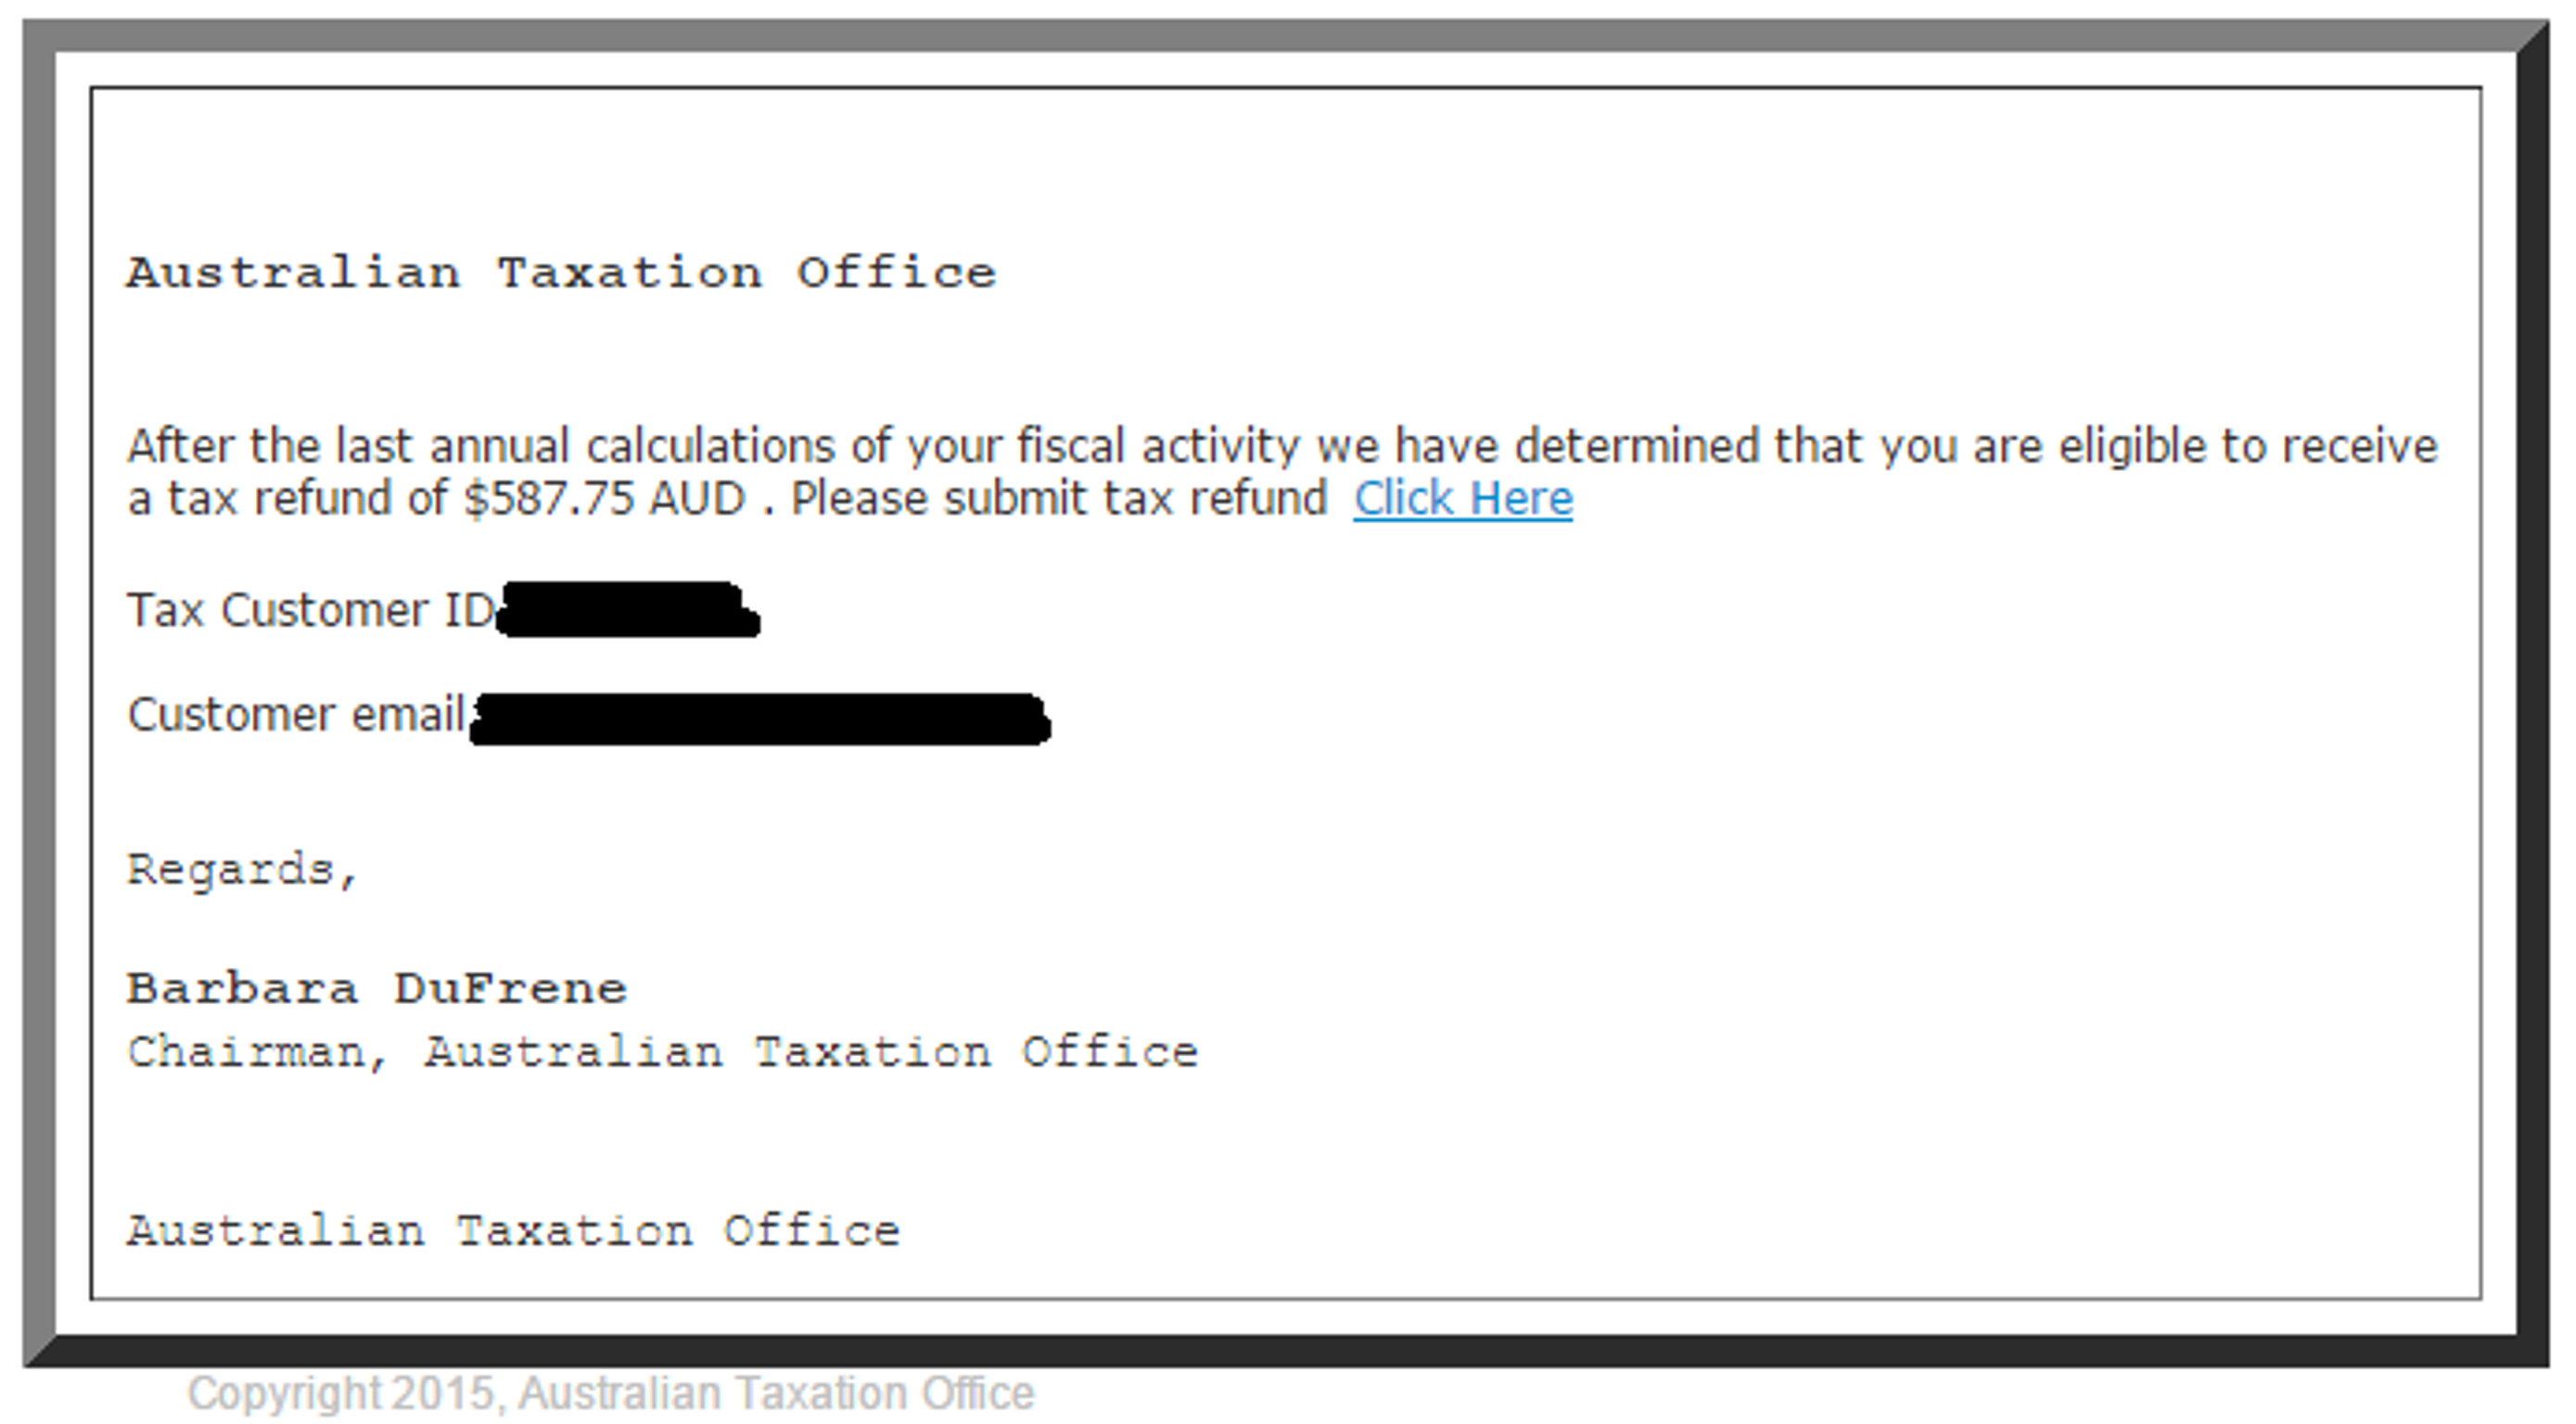 MailShark Fake Australian Tax Office emails circulating